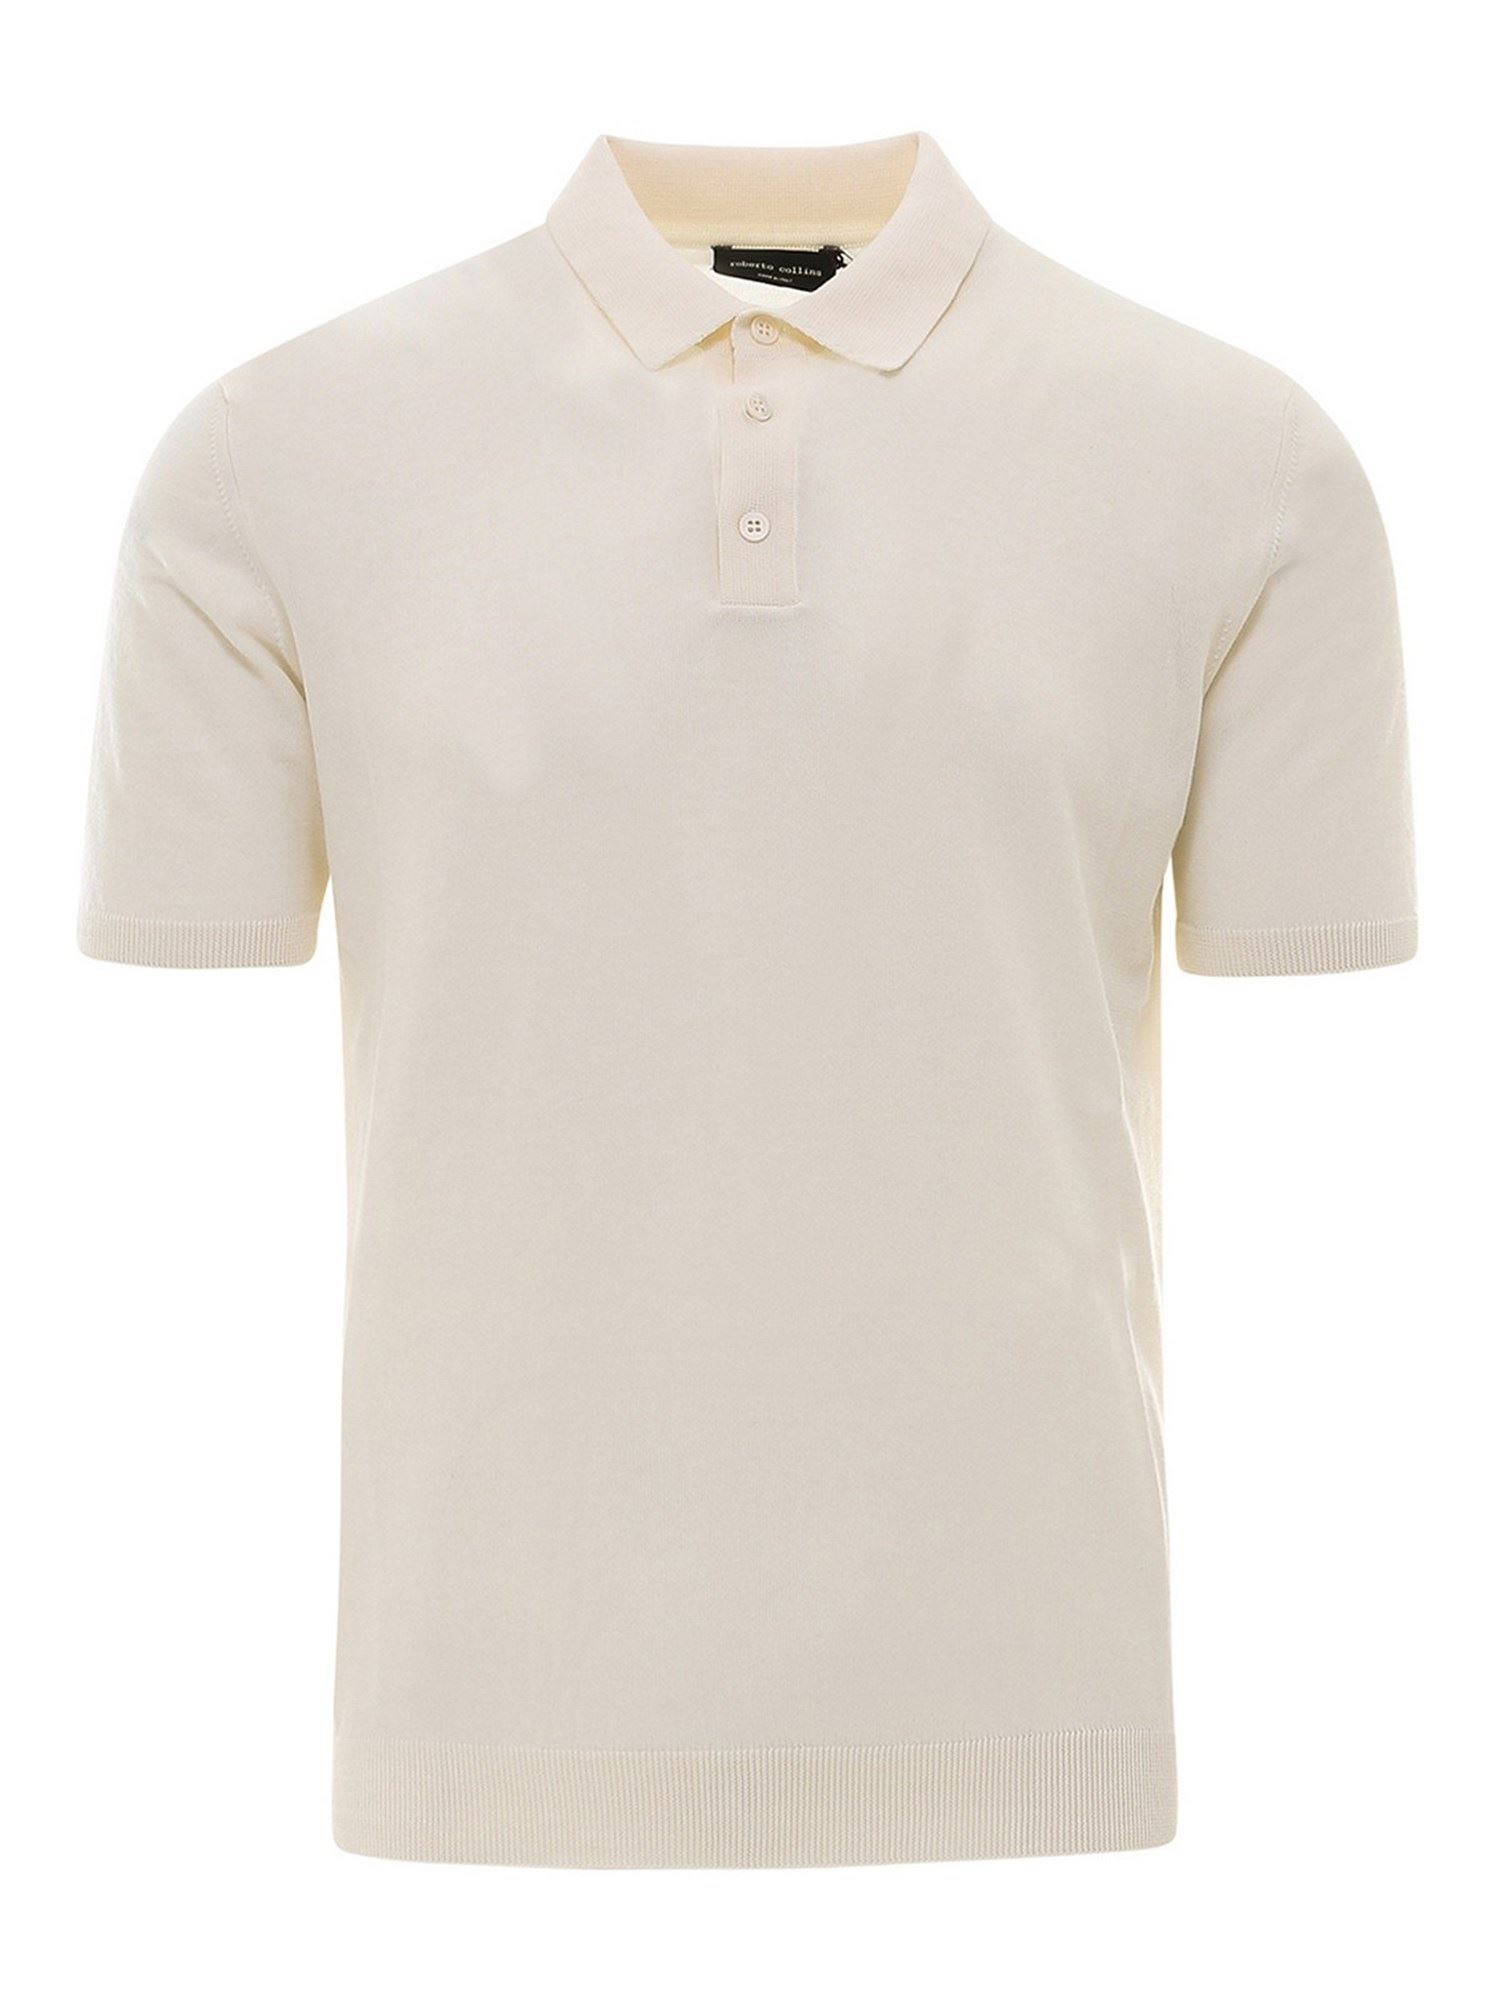 Roberto Collina JERSEY POLO IN IVORY COLOR